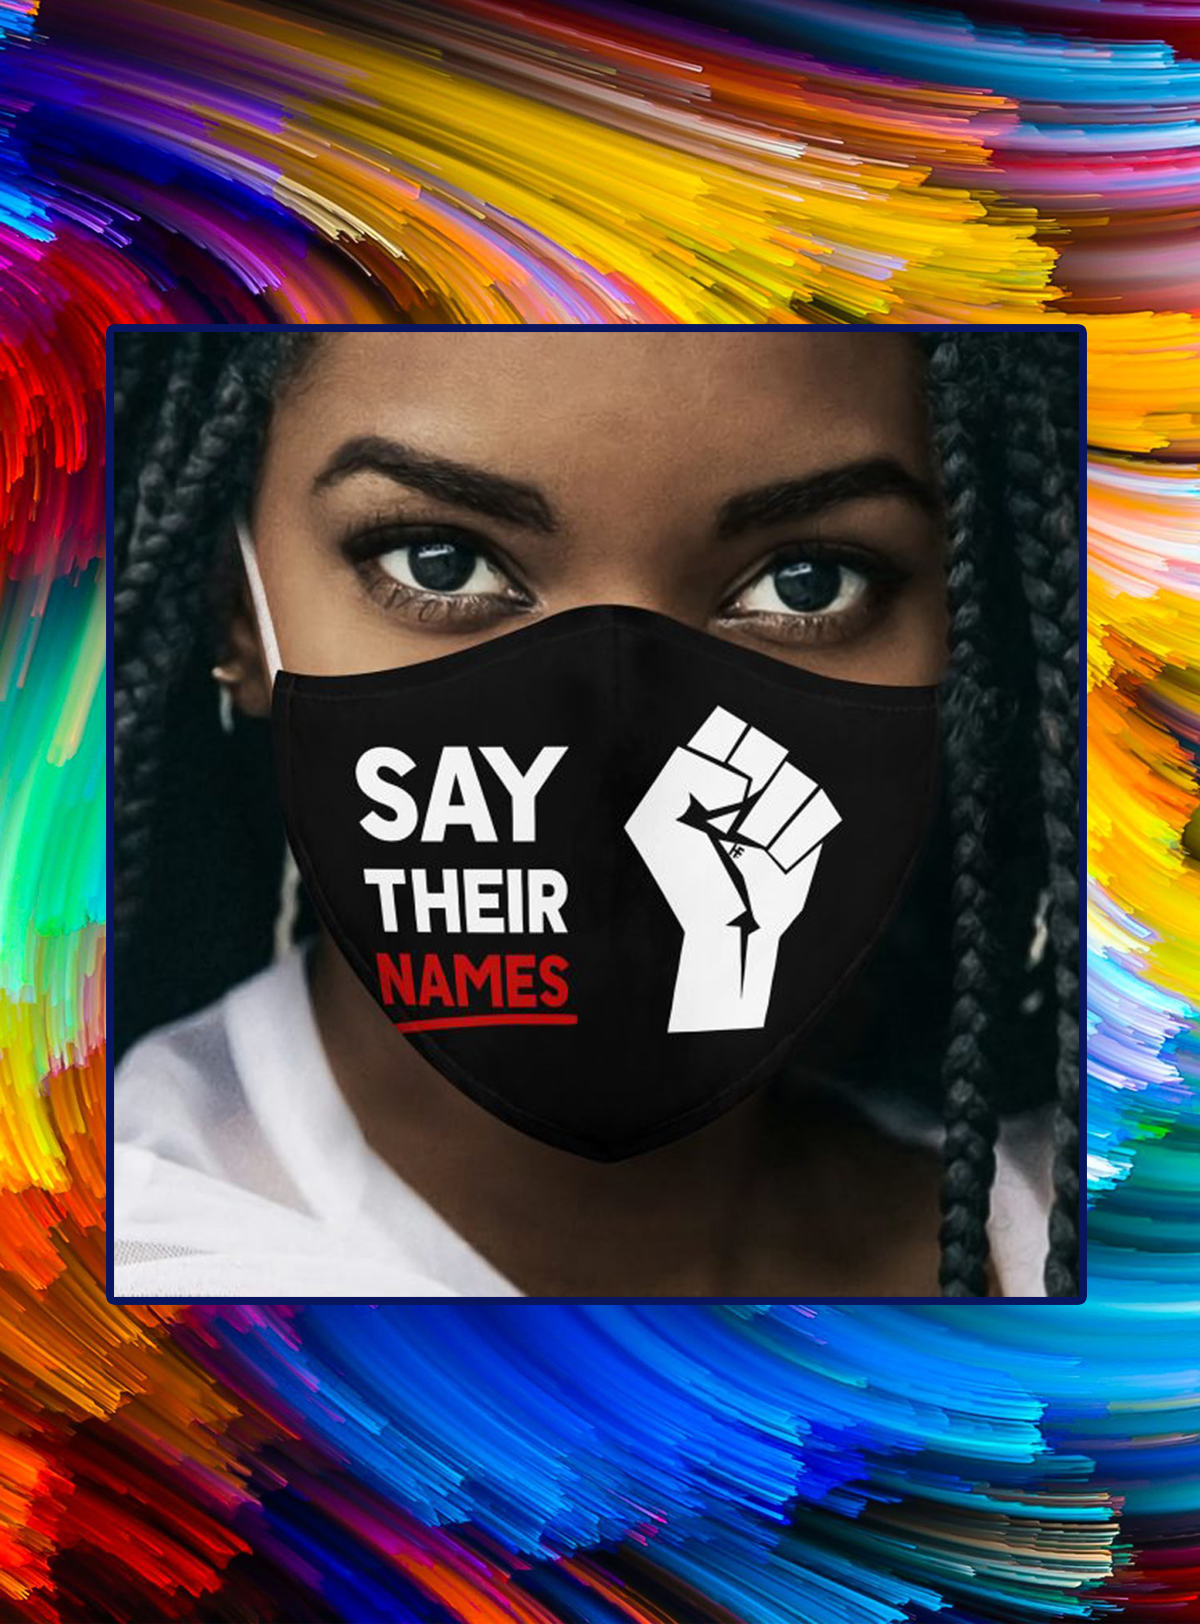 Say Their Names Black Lives Matter face mask - Picture 1